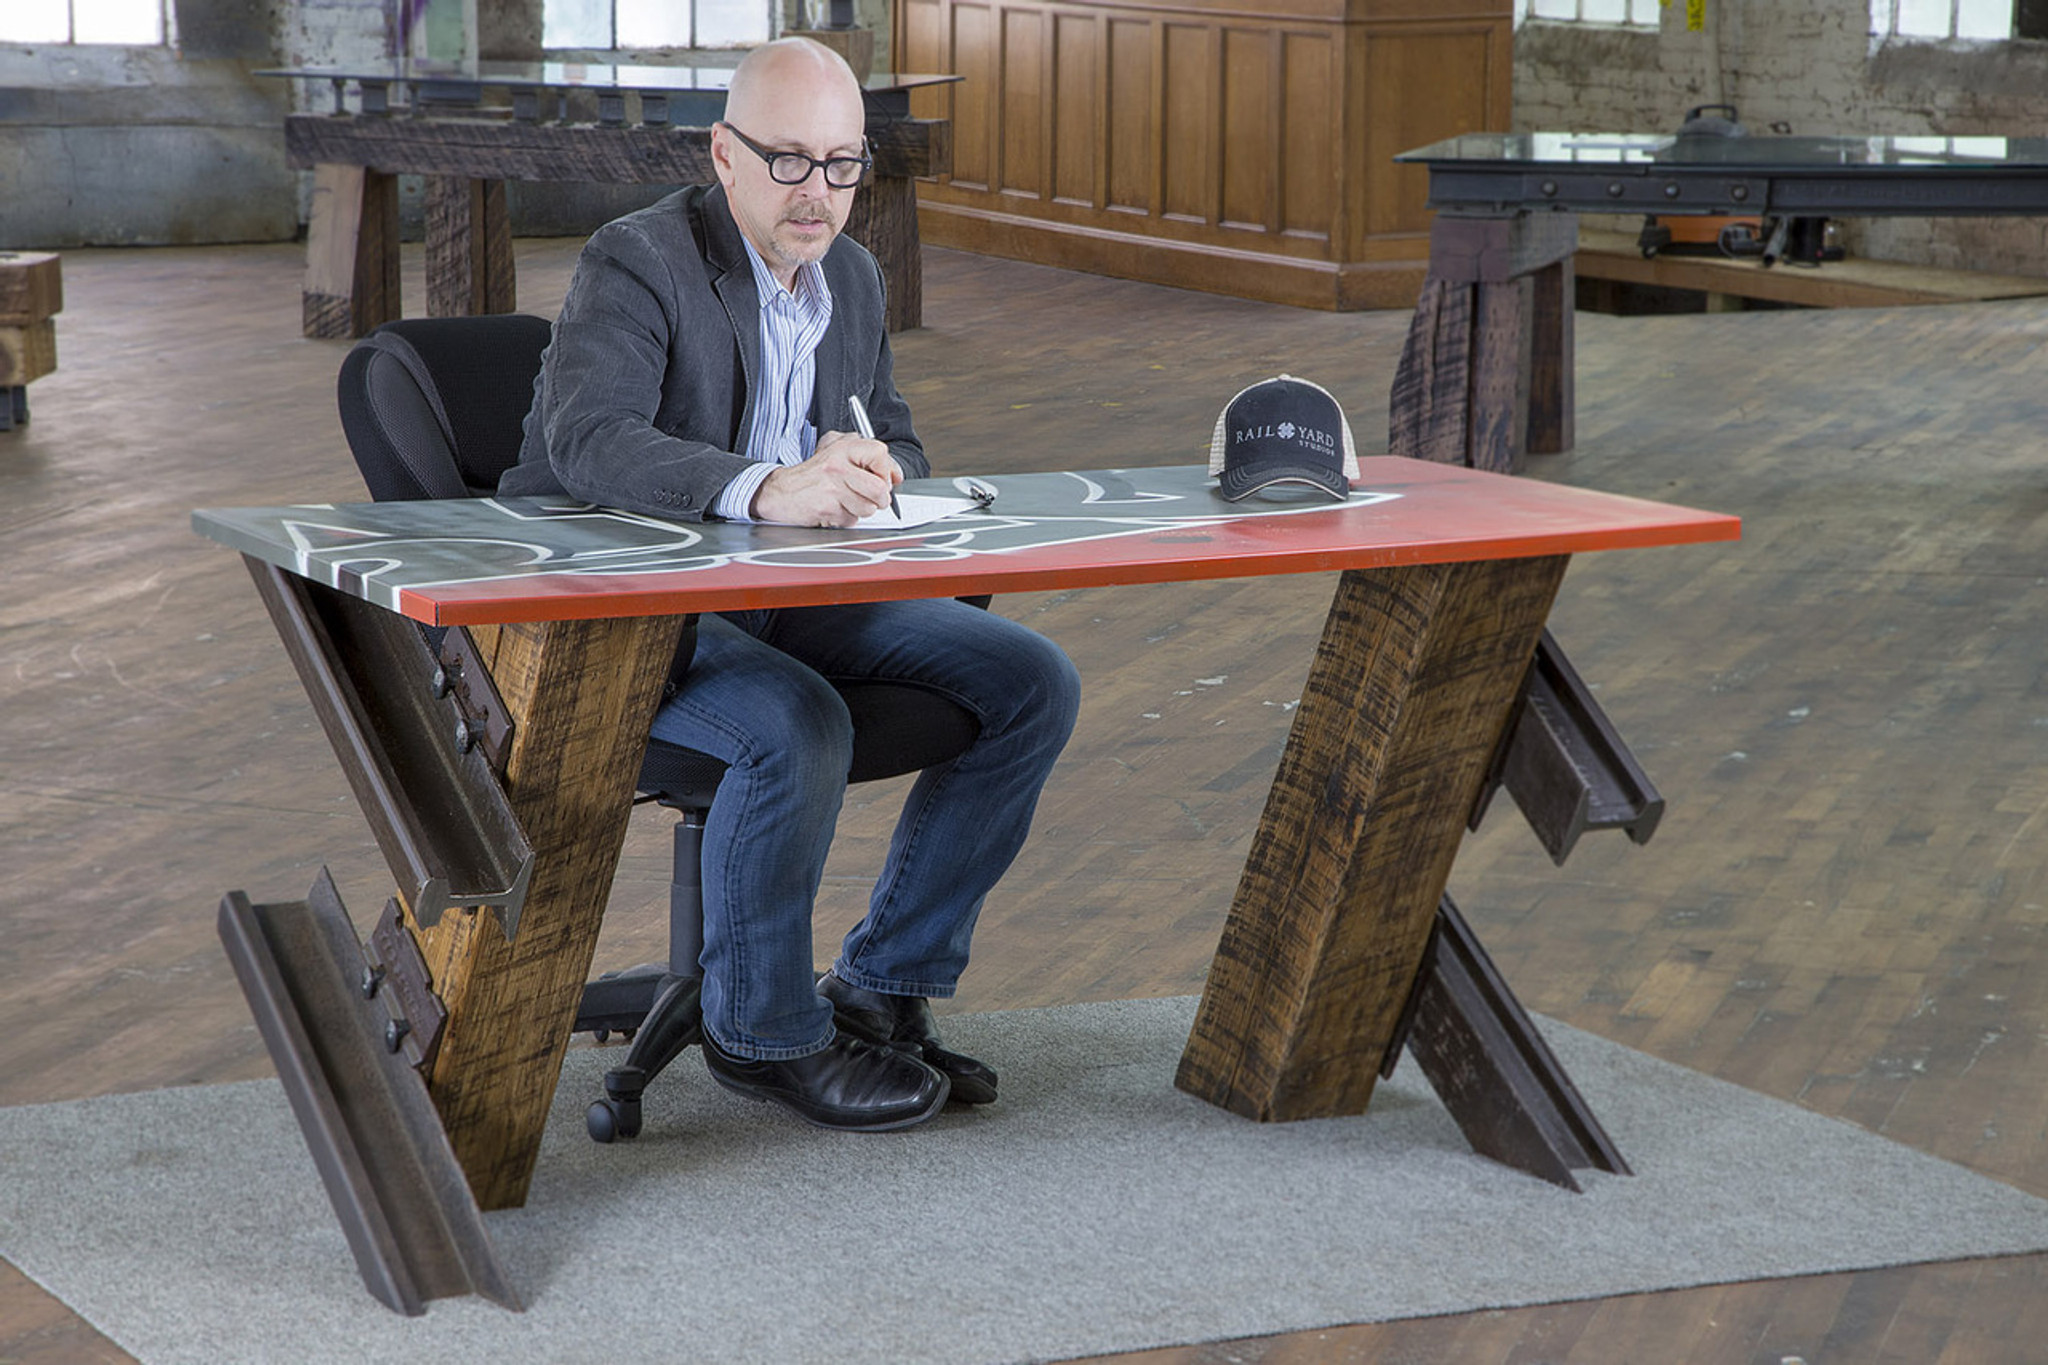 urban loft graffiti art style desk with reclaimed wood and steel legs in renovated warehouse